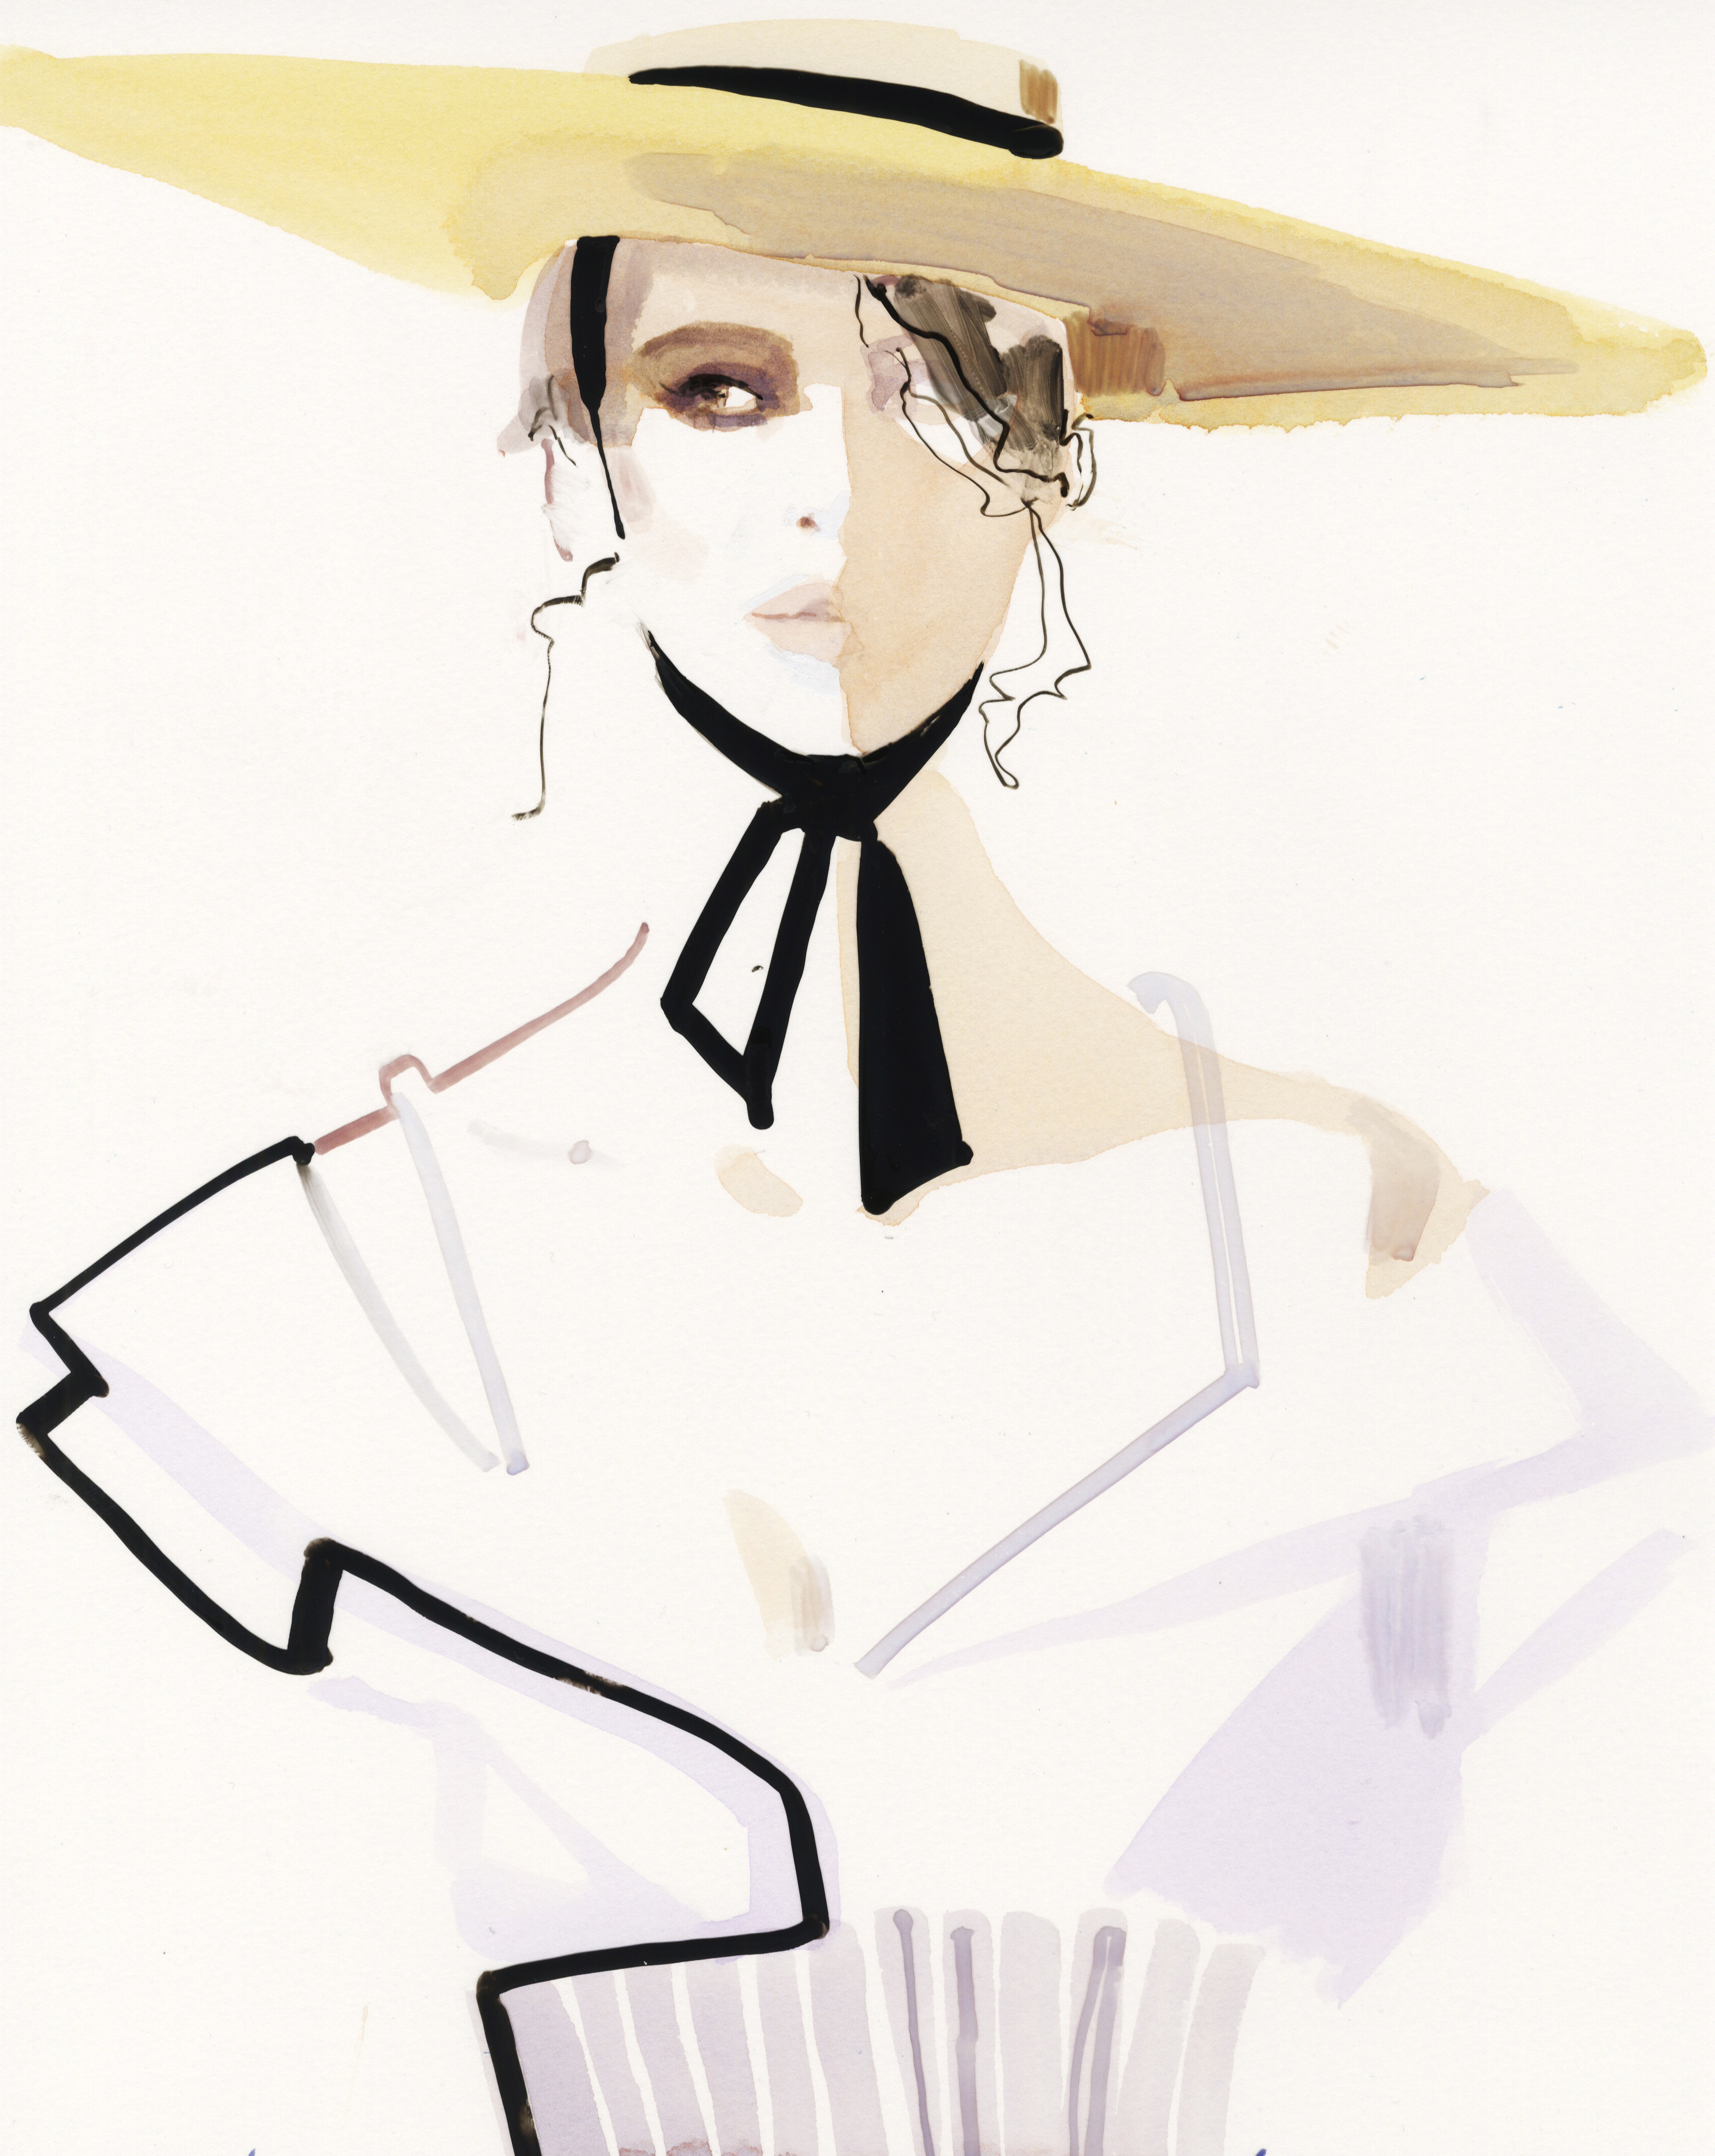 An illustration by David Downton